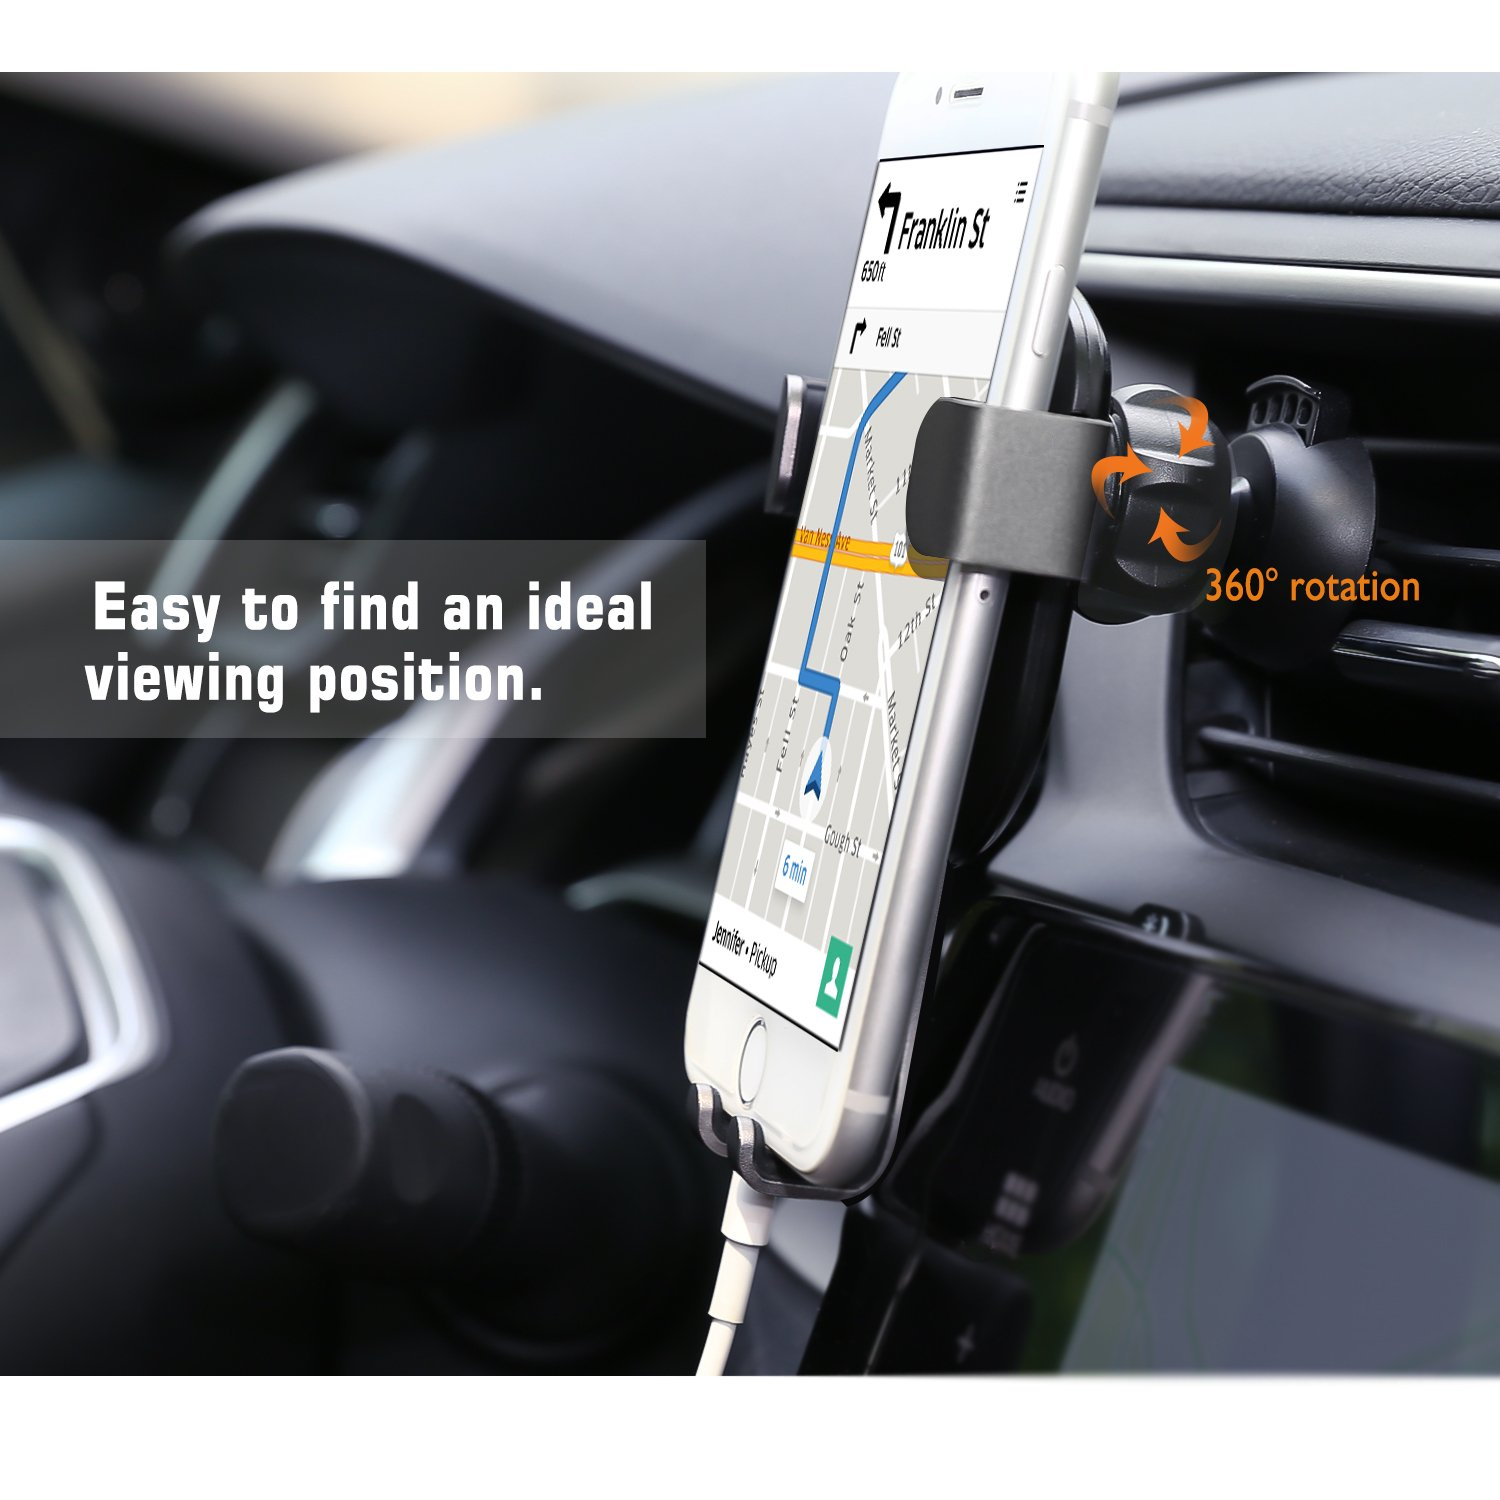 Google Sony Black 4351547943 Universal Car Air Vent Smartphone Holder with Auto-Locking Design for 4-6.5 Devices MoKo Car Phone Mount Compatible with Galaxy S9//S9 Plus iPhone Xs Max//Xs//XR// 8 Plus// 7